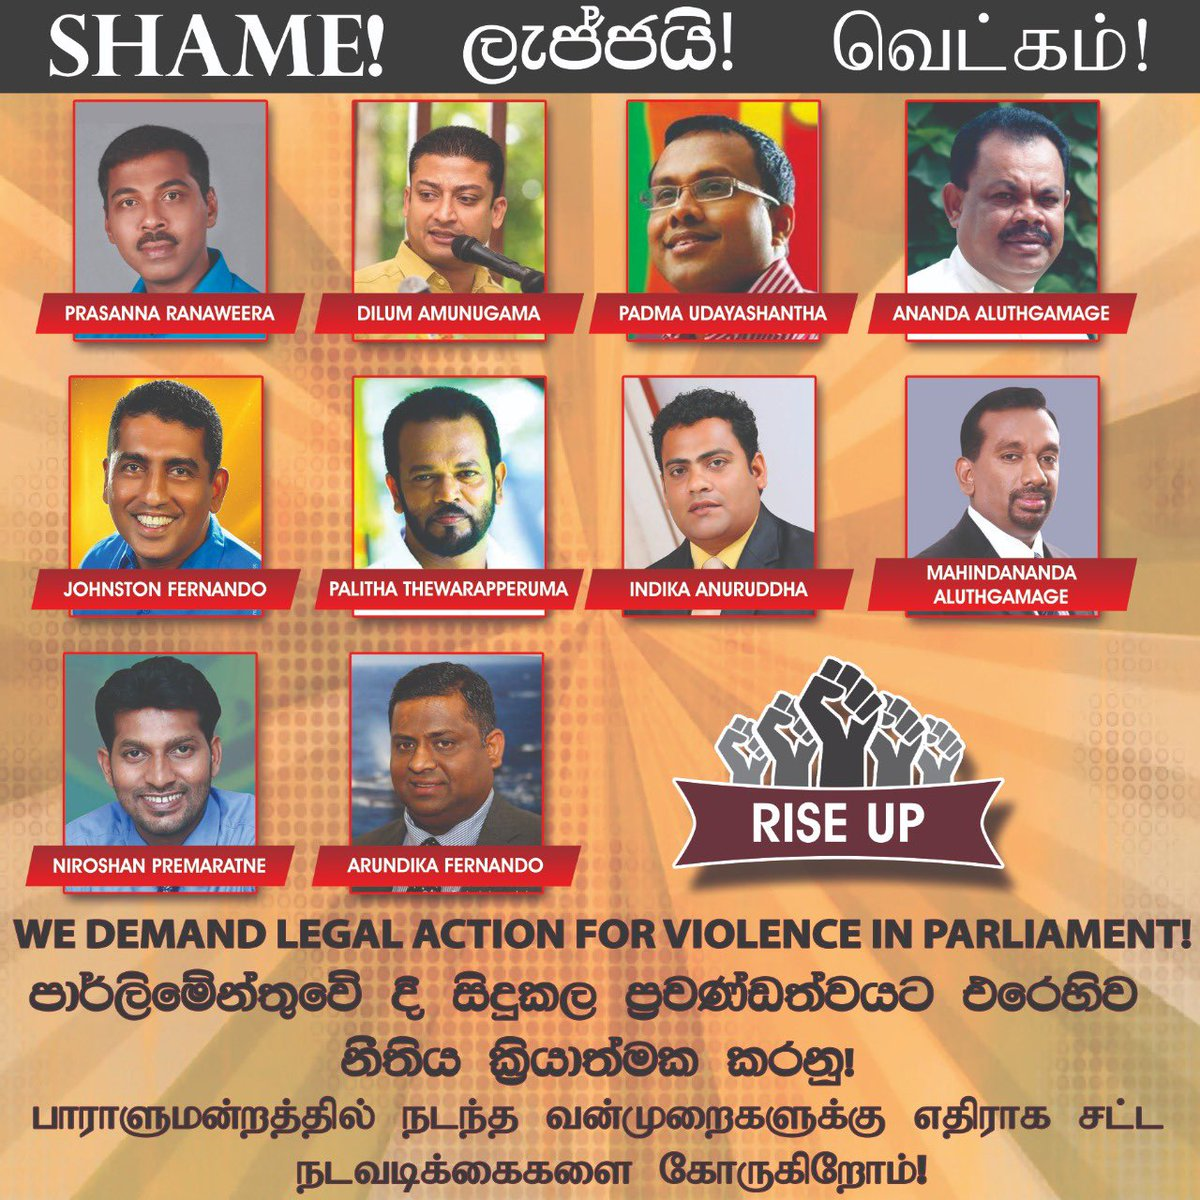 MPs are not above the law. Join us tomorrow at 9am in front of Parliament grounds. Let's demand justice. #srilanka #justice #violent #MPs #disgrace #never #forget